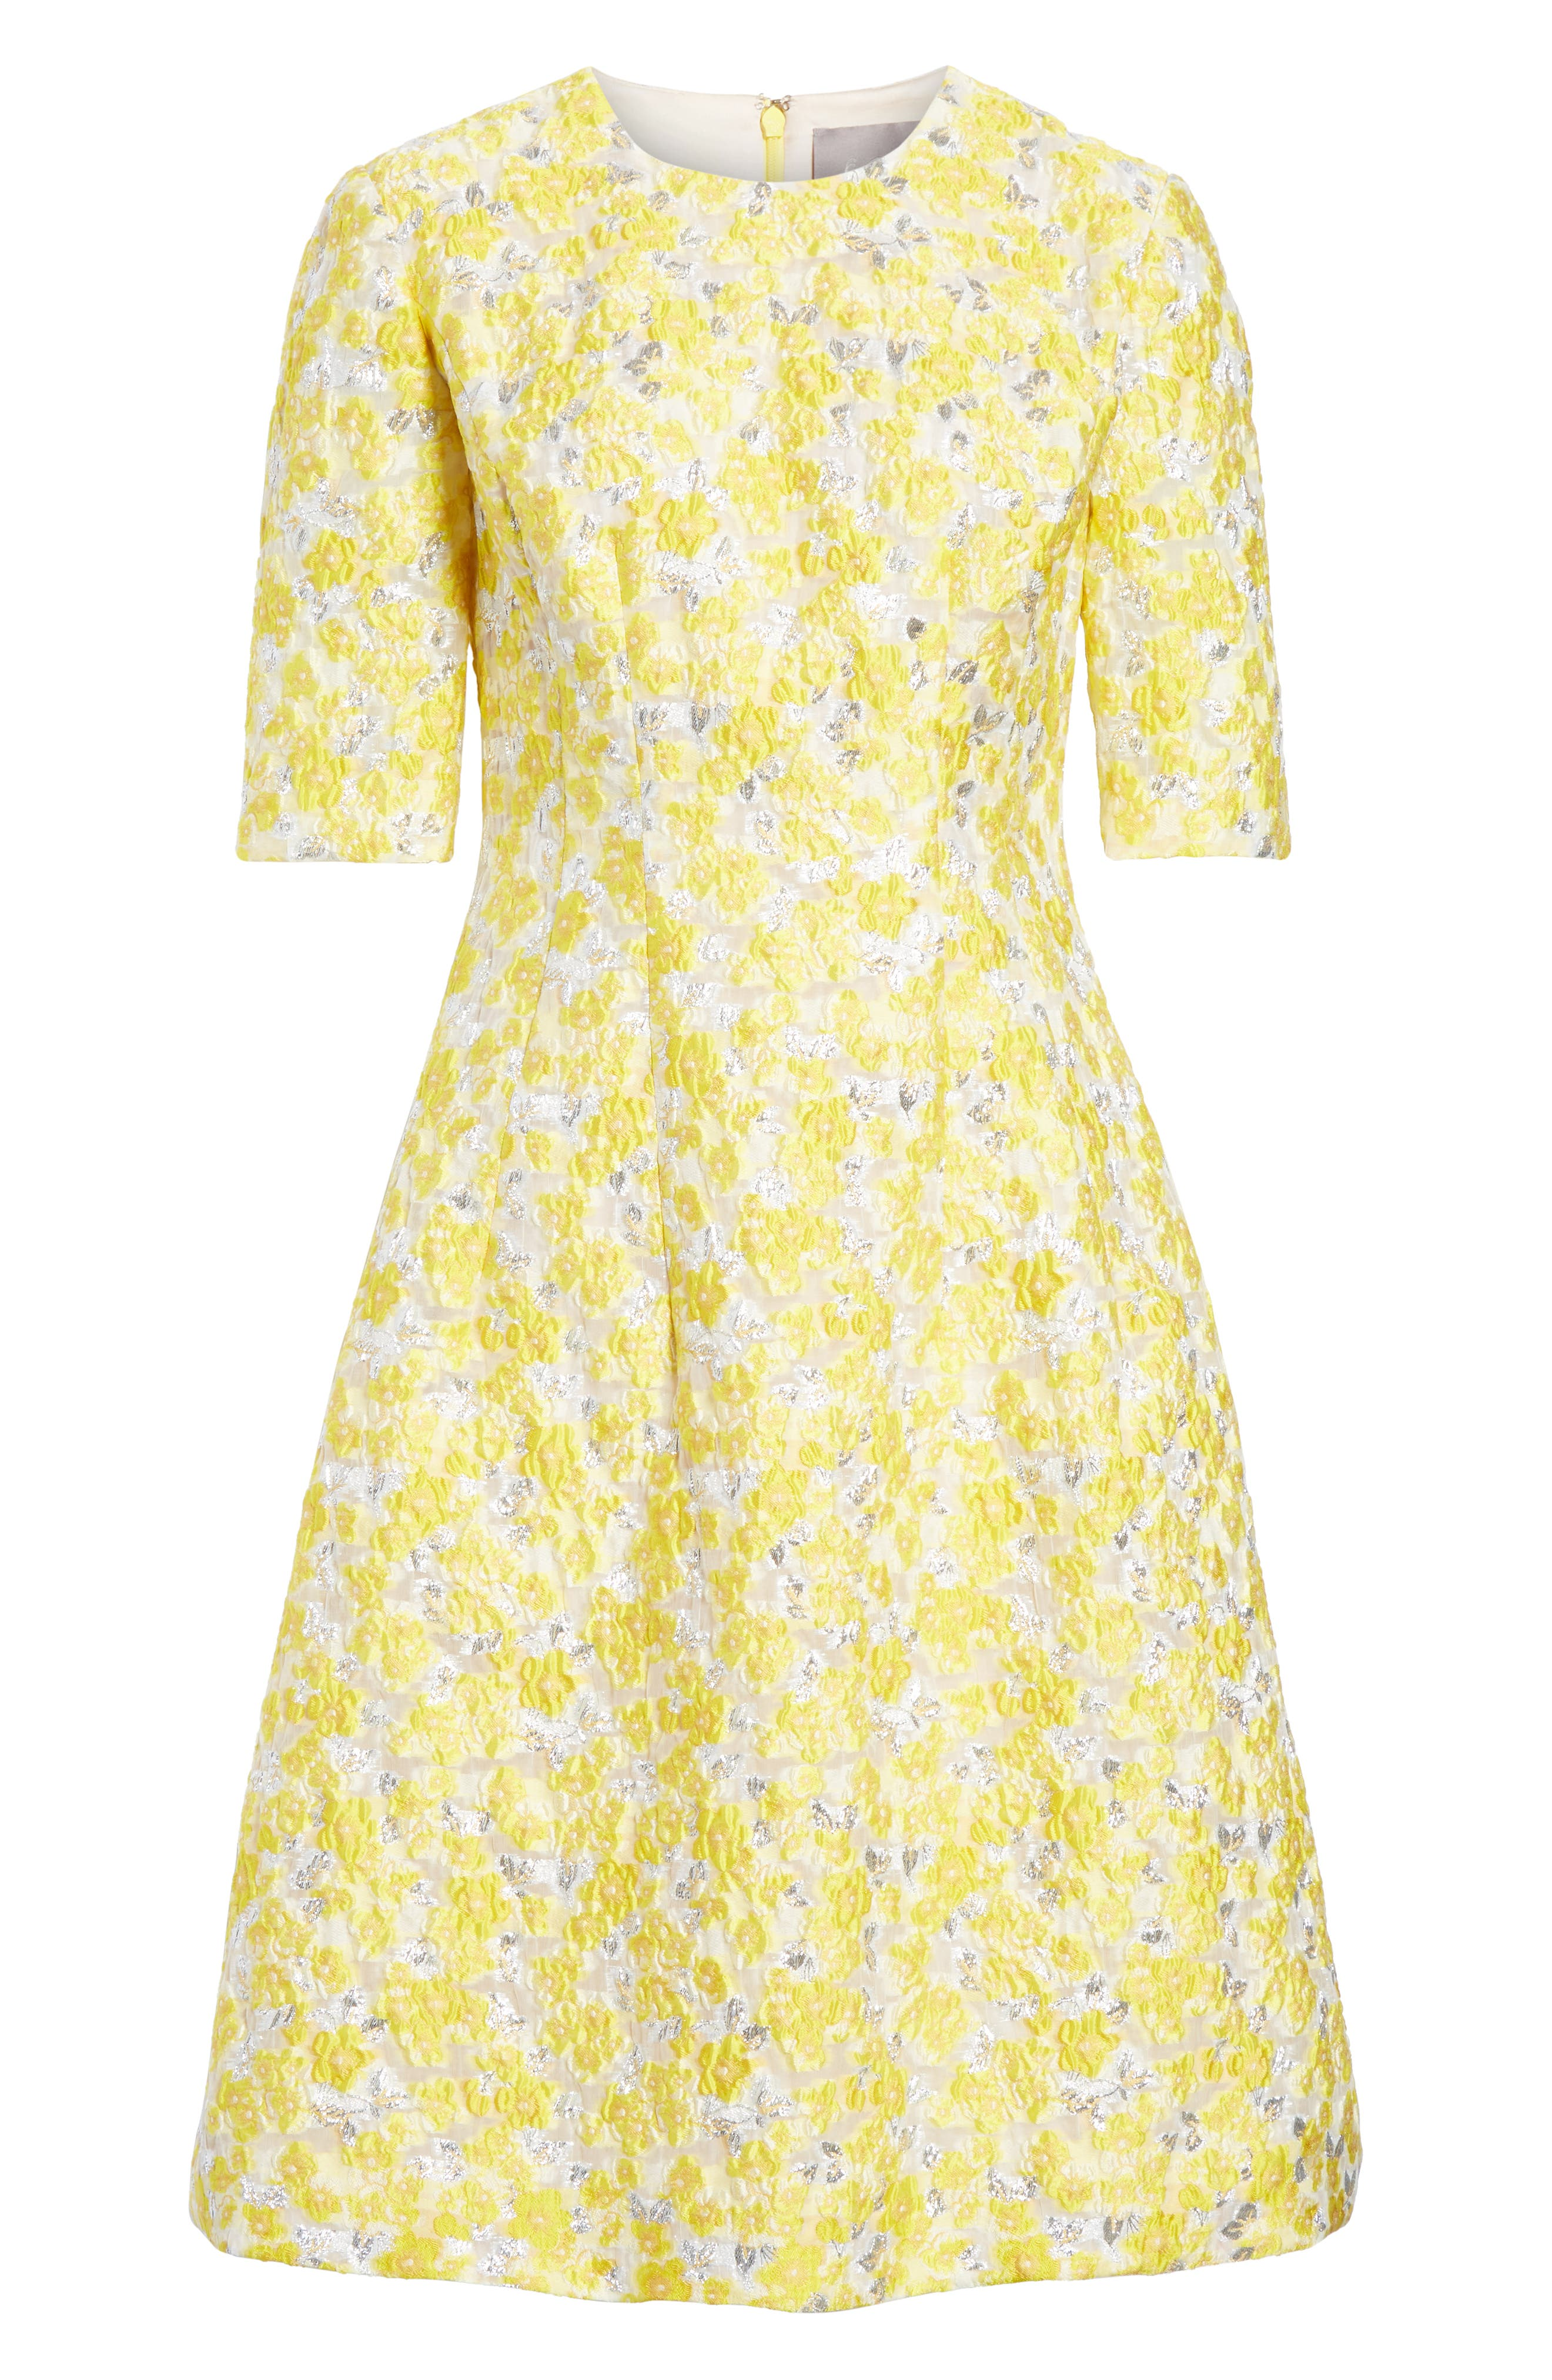 Holly Metallic Floral Fil Coupé Fit & Flare Dress,                             Alternate thumbnail 6, color,                             YELLOW